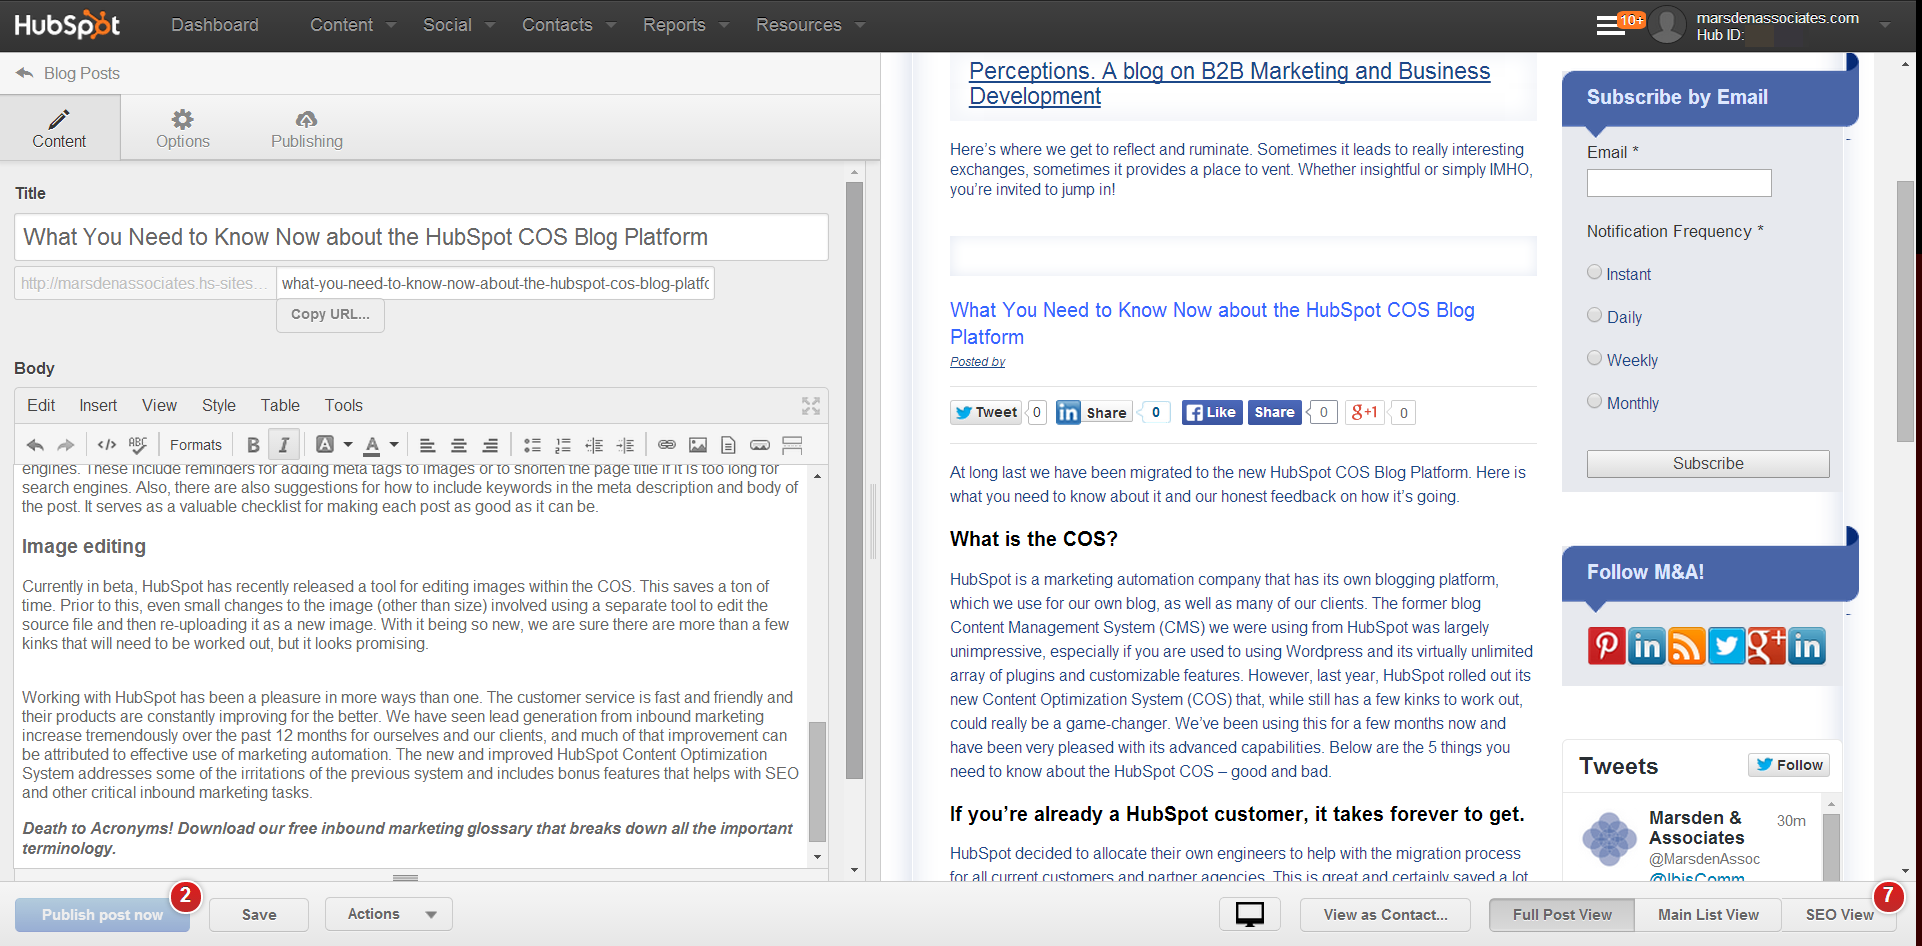 What You Need to Know Now about the HubSpot COS Blog Platform